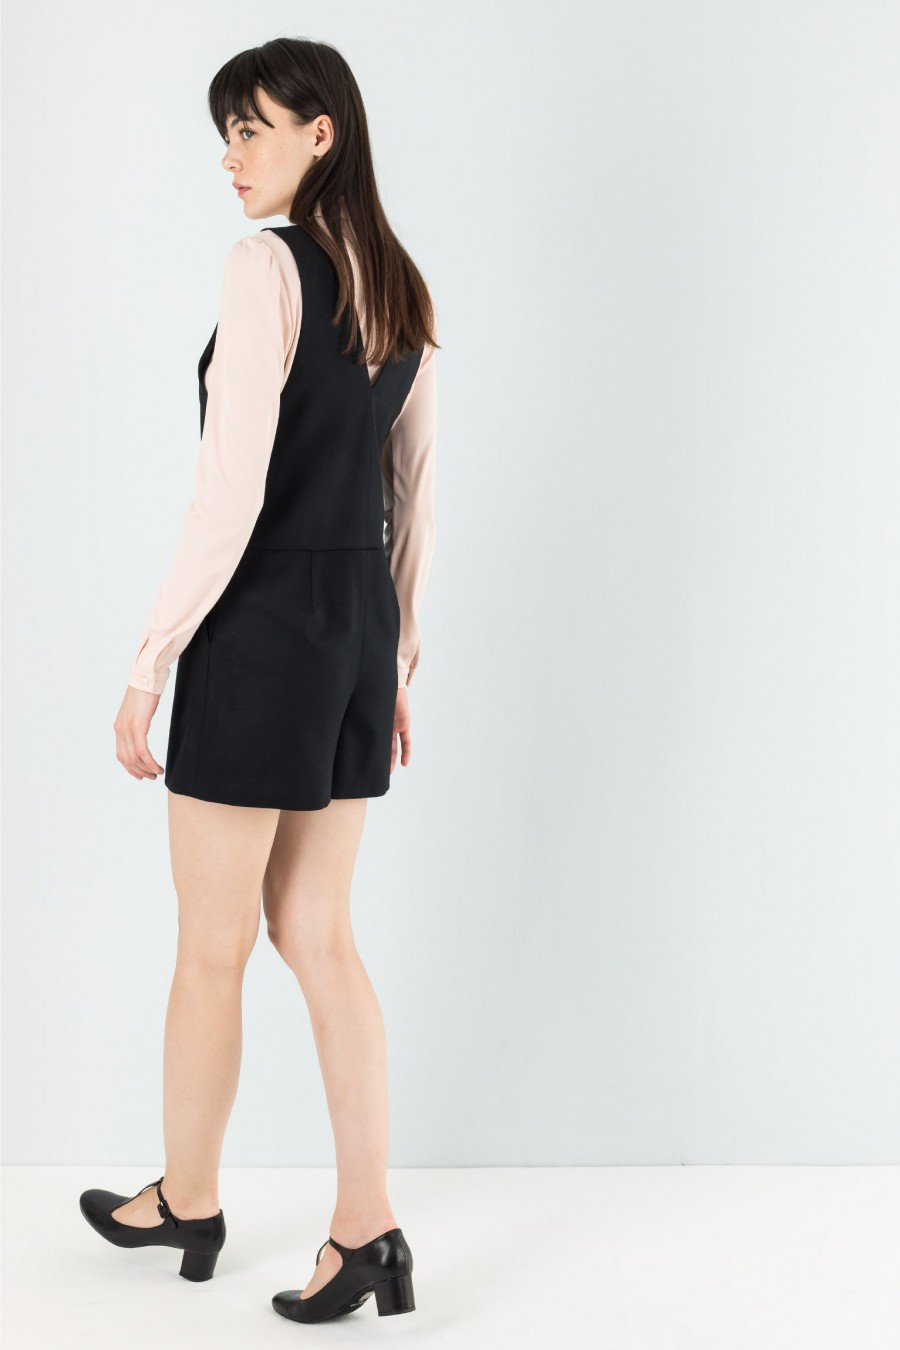 Lazzari black romper